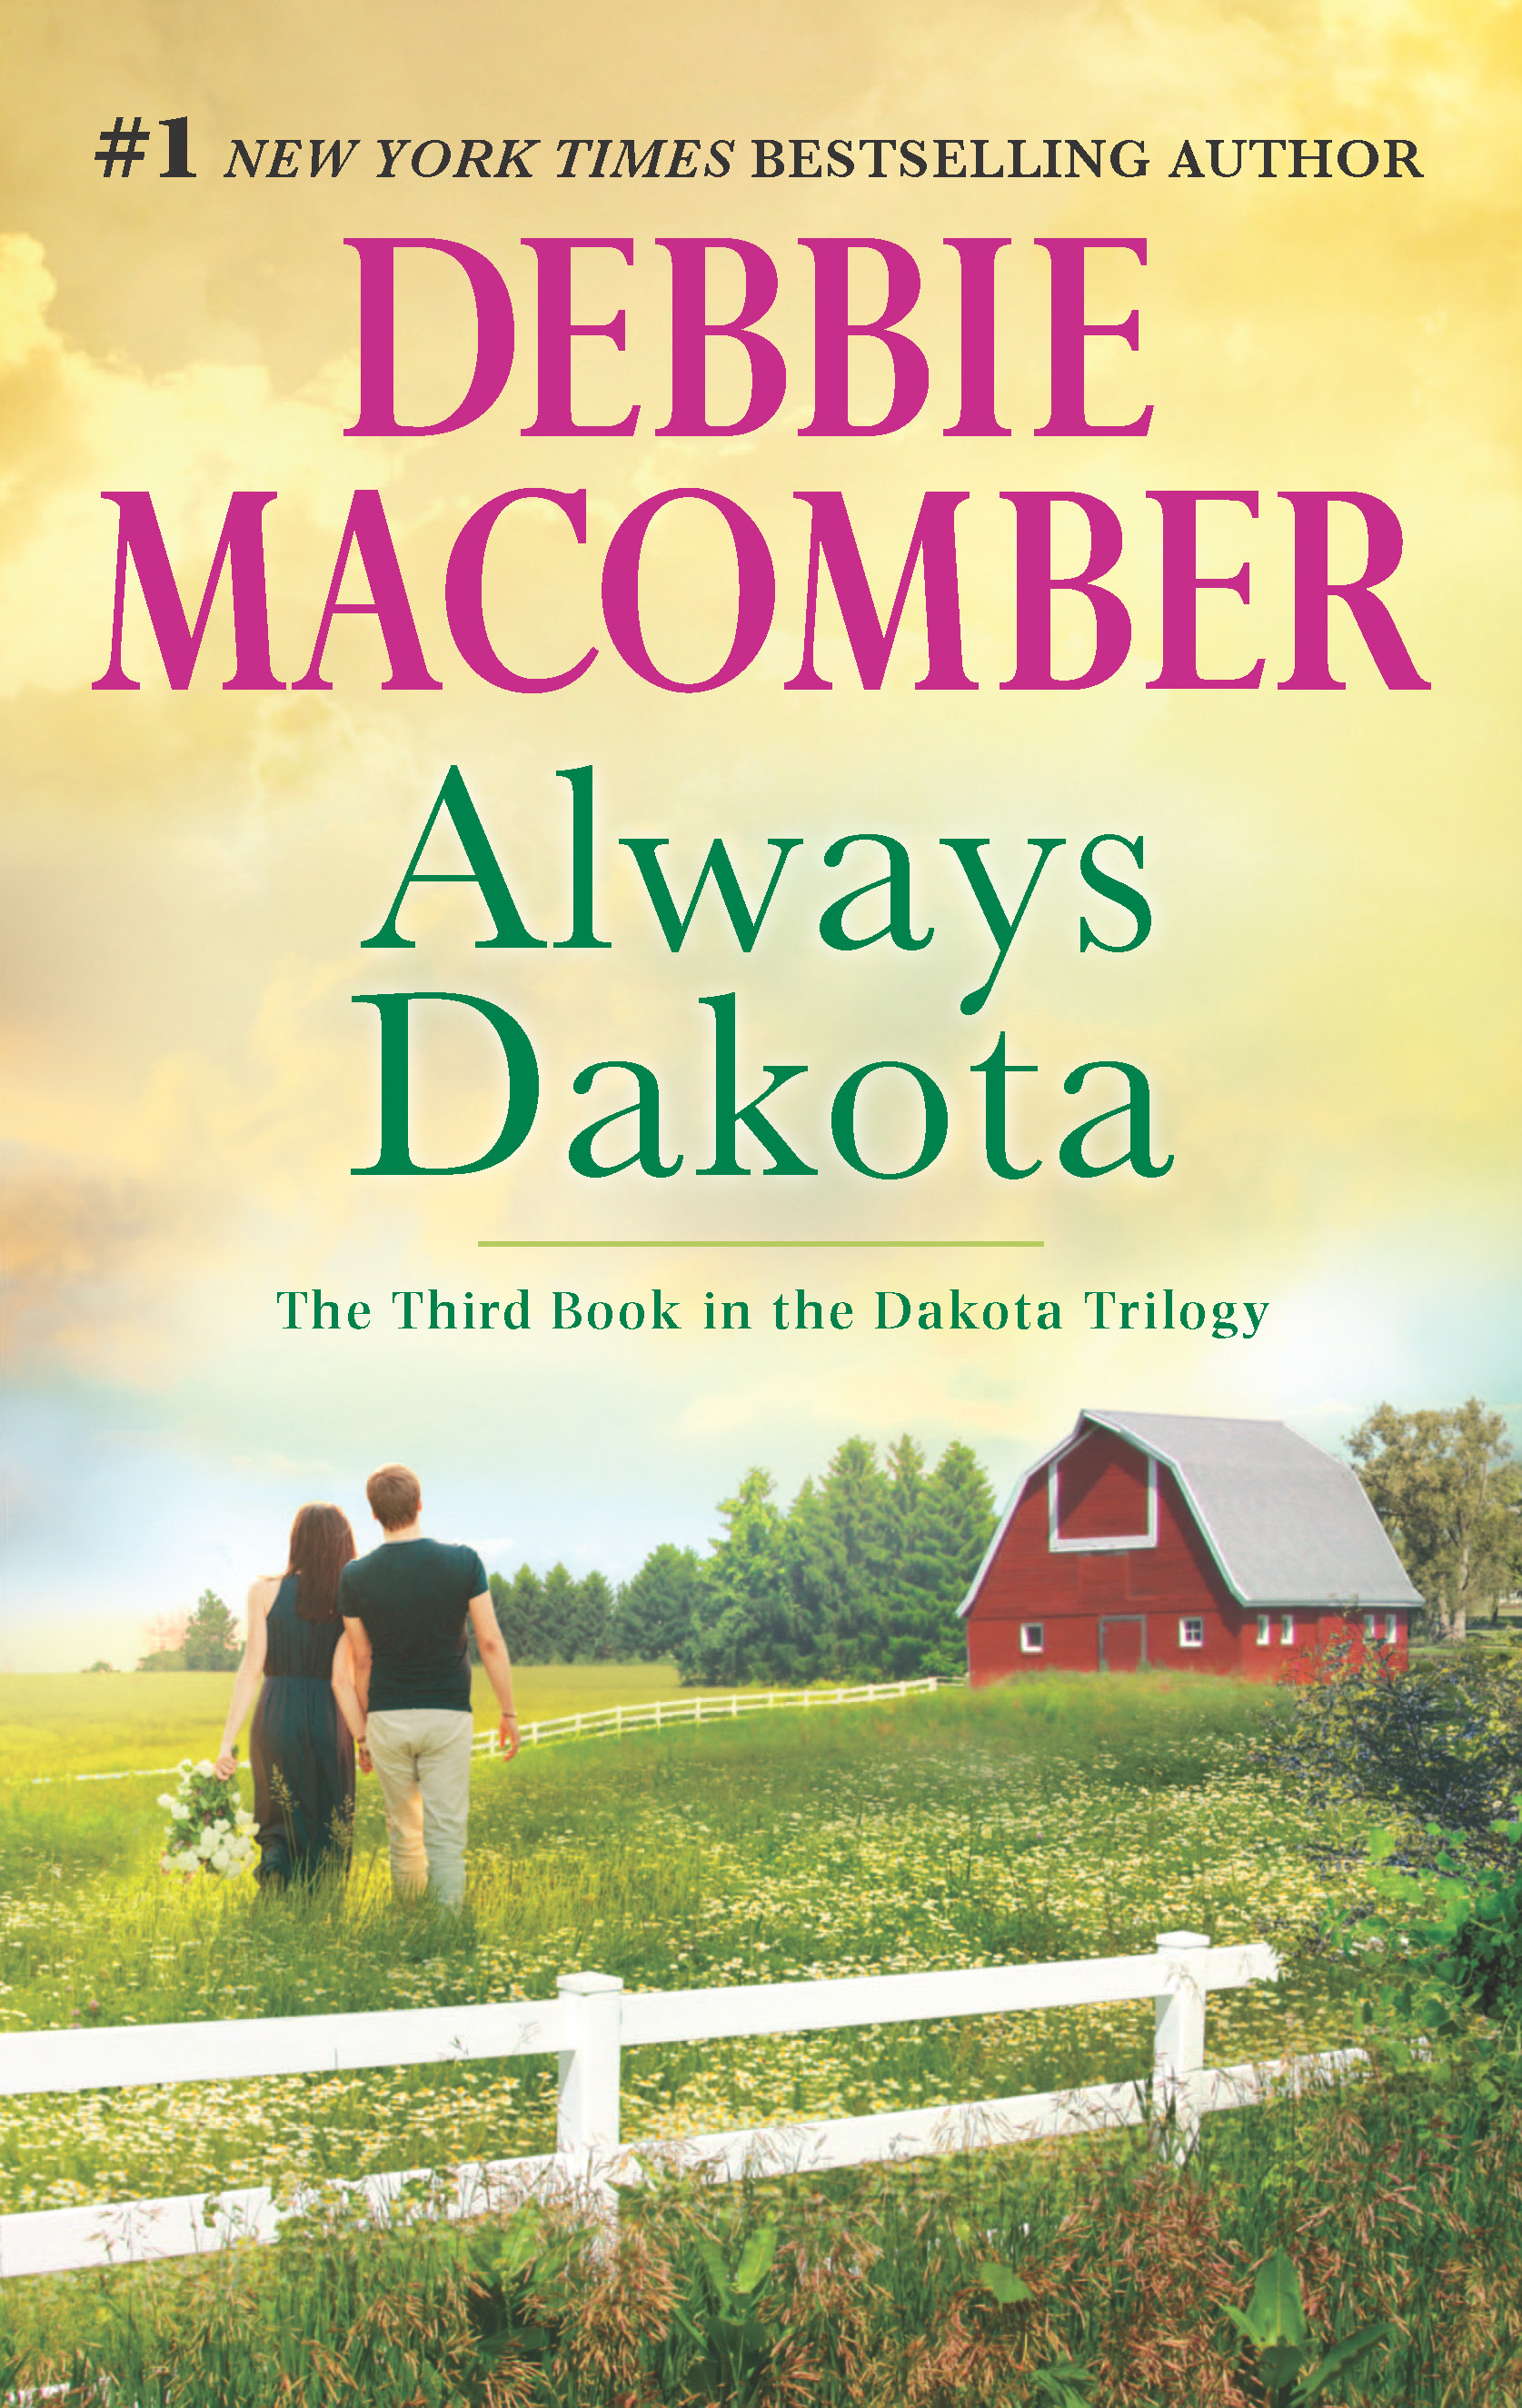 Debbie Macomber's Always Dakota